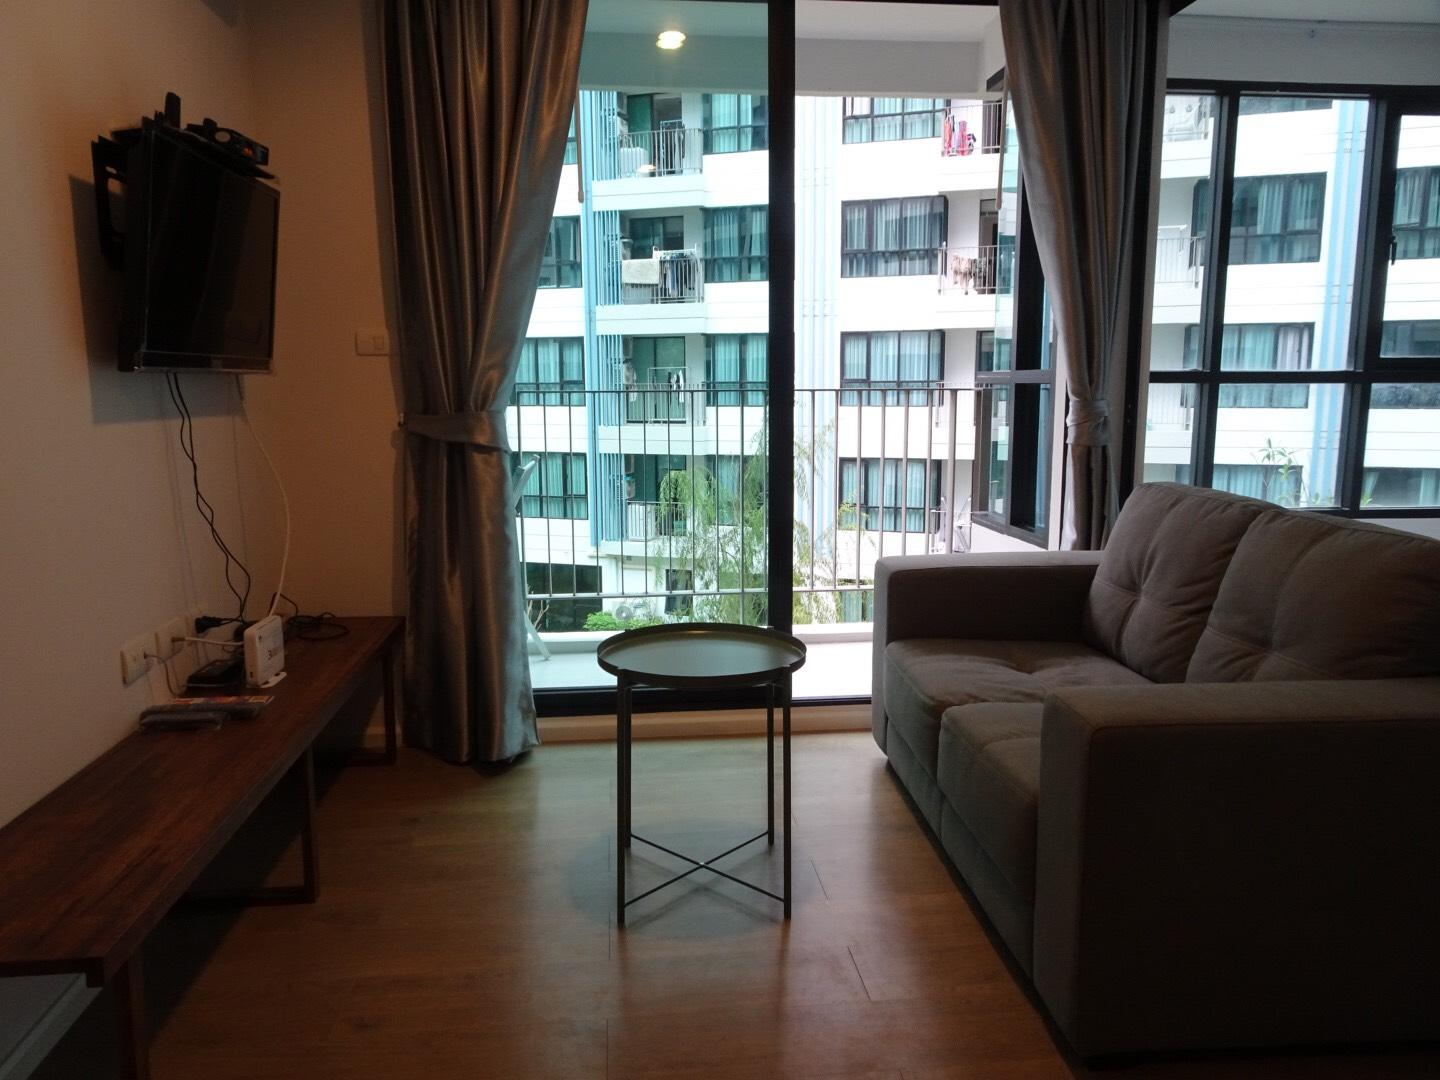 Review Centrio Condo by Wichanee (Free rent Motorbike)